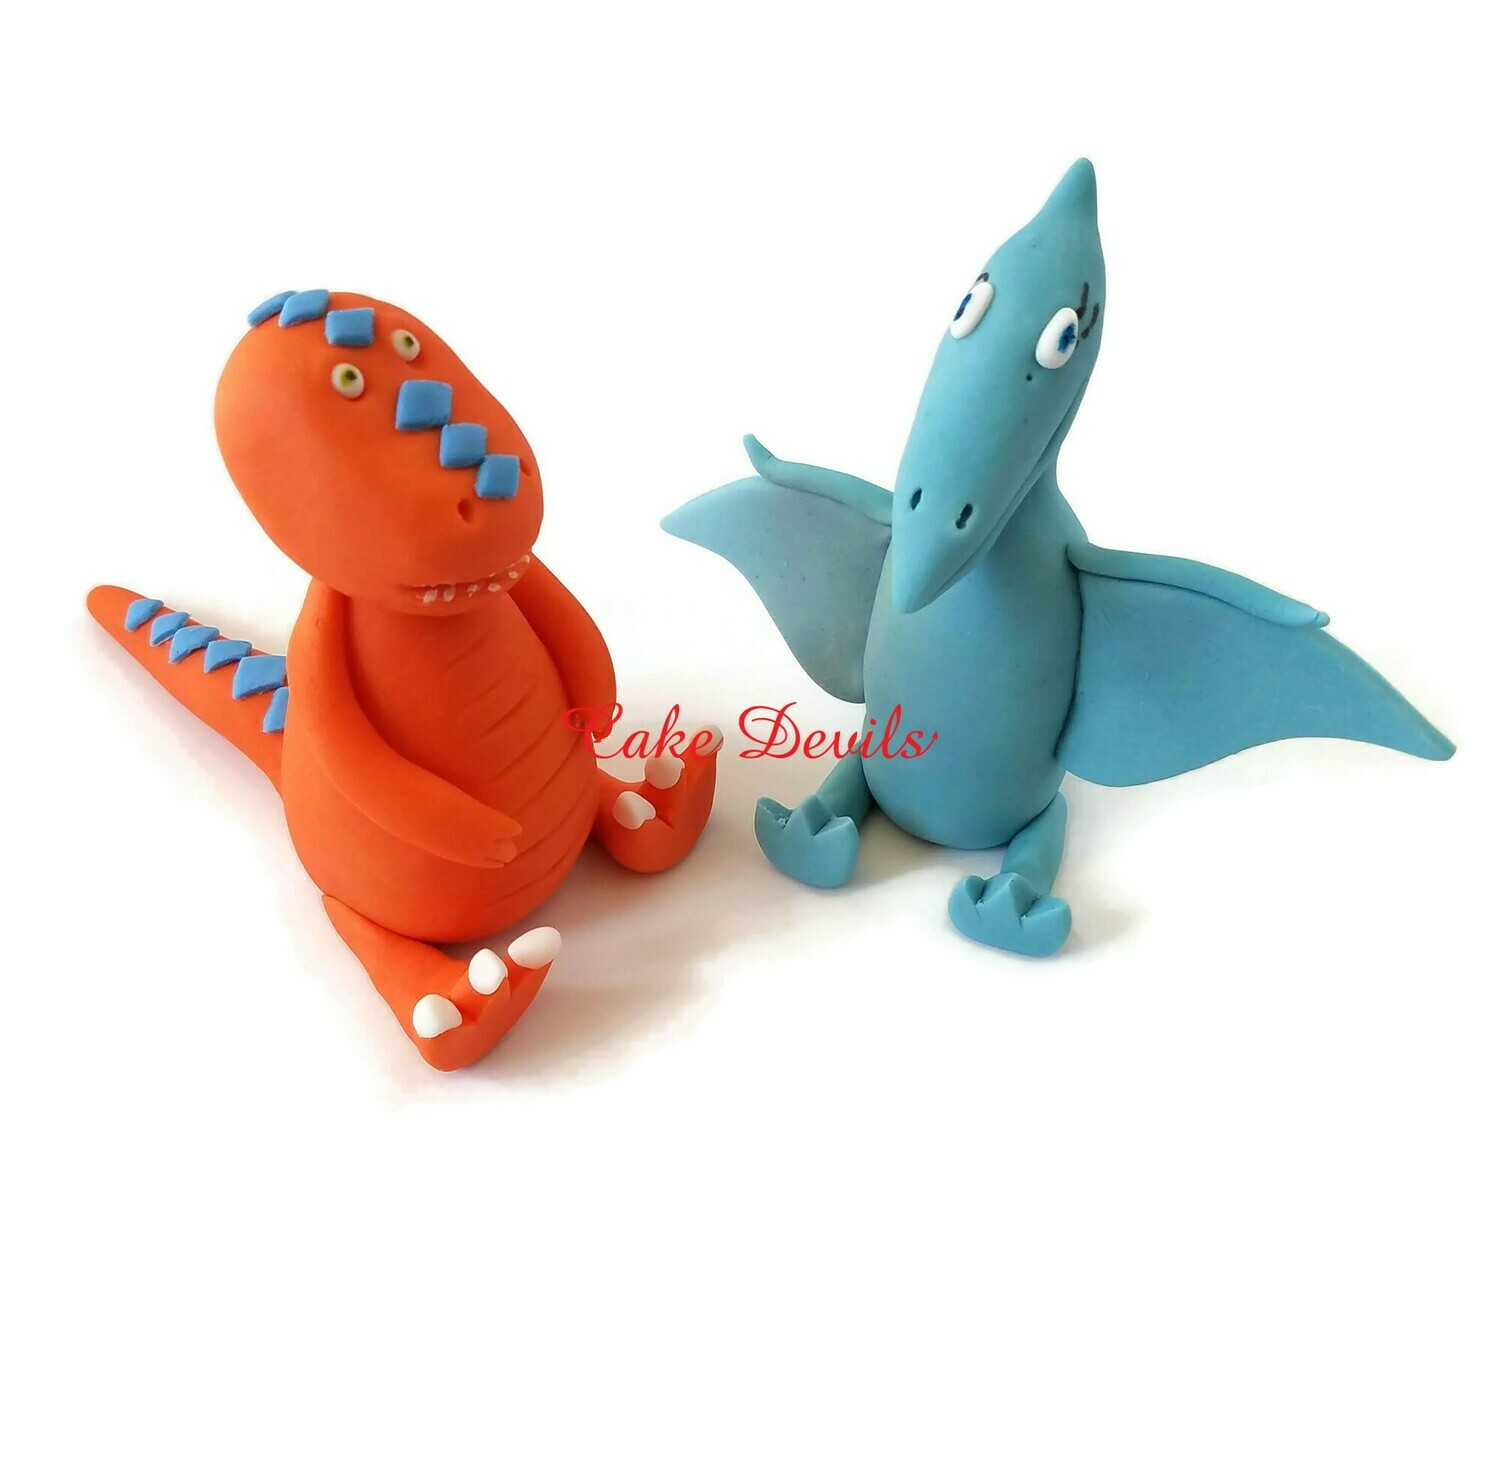 Dinosaur Train Fondant Dinosaur Cake Toppers, Shinny and Buddy Cake Decorations